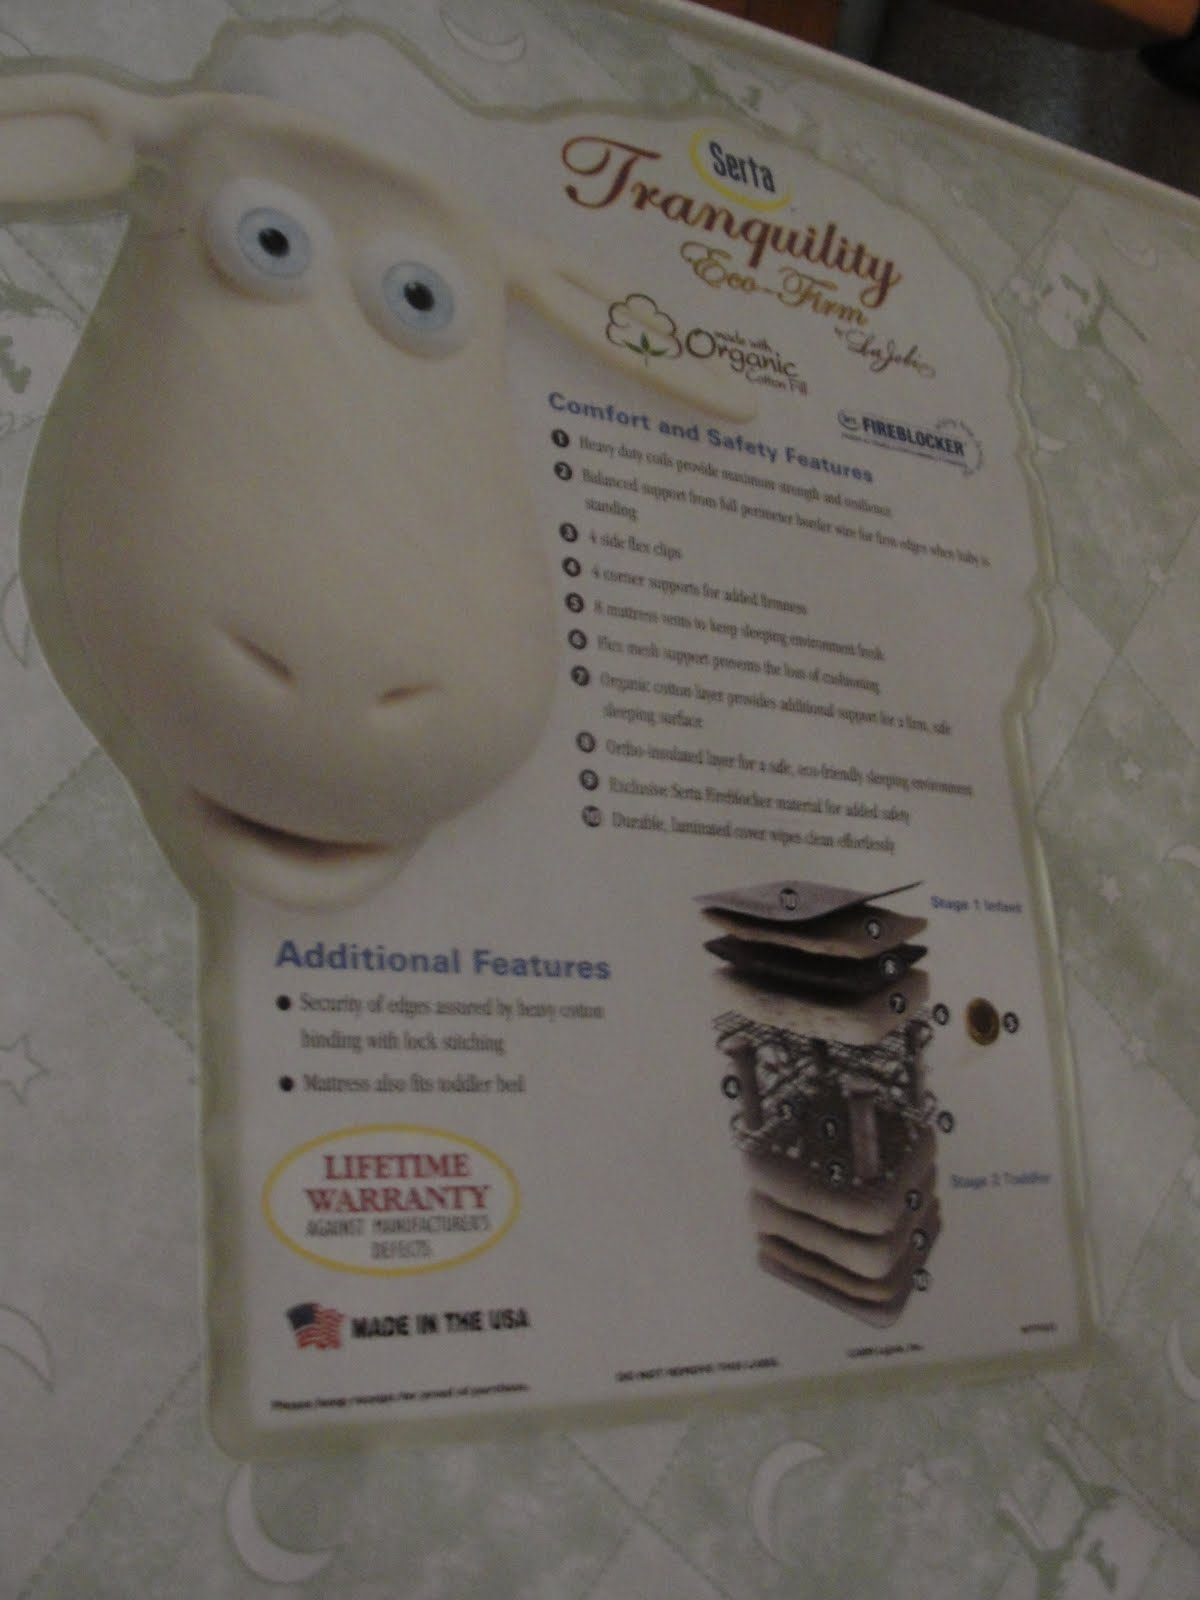 Serta Tranquility Mattress Serta Tranquility Eco – Firm Crib Mattress (Review and Giveaway ...